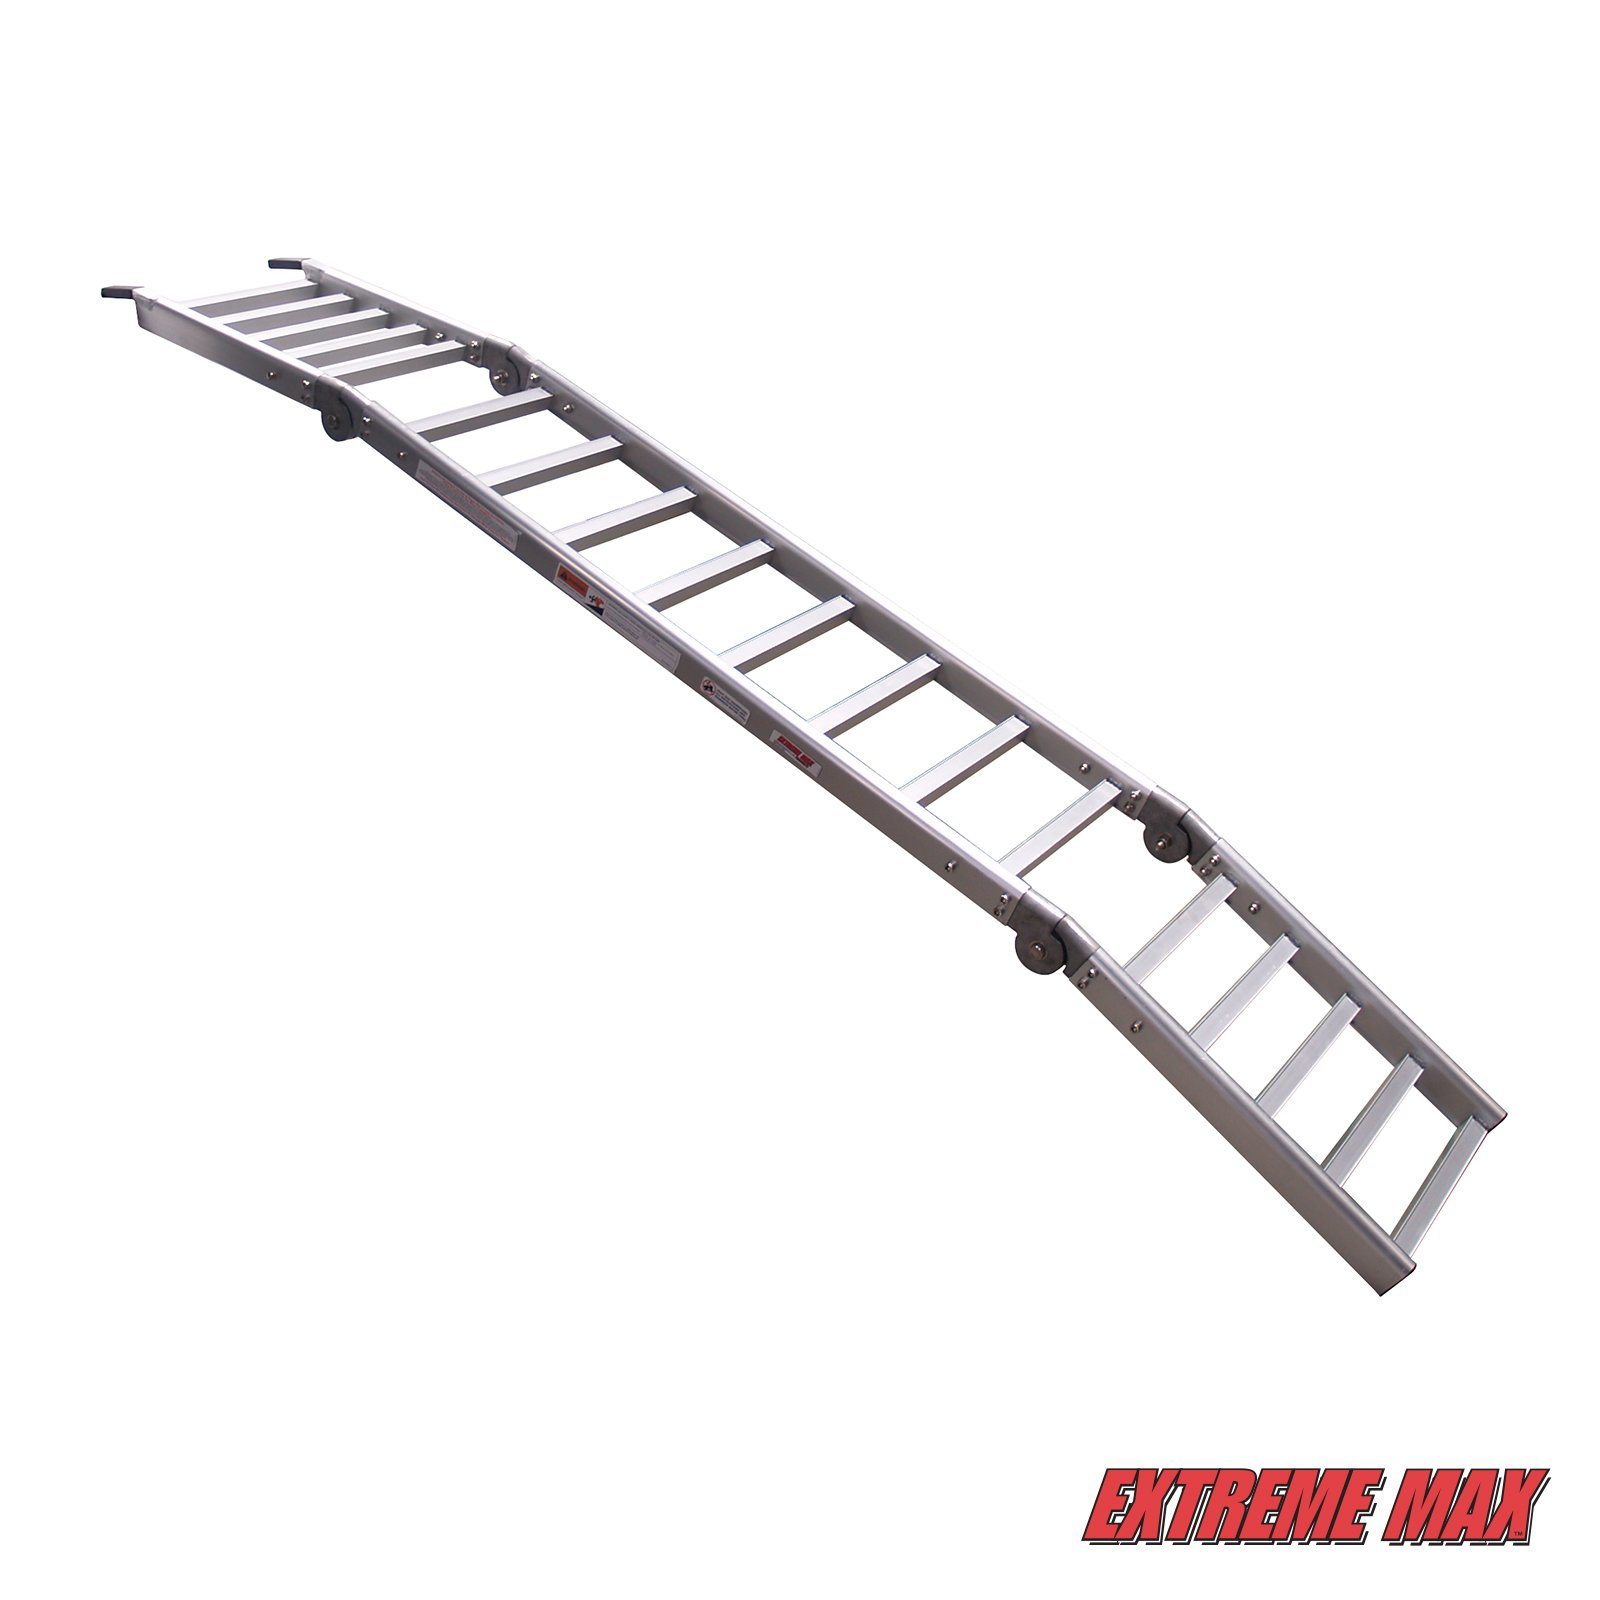 Extreme Max (NR002S-SLVR) Motorcycle RampXtender Aluminum Ramp Set and Tailgate Extender Combo by Extreme Max (Image #7)